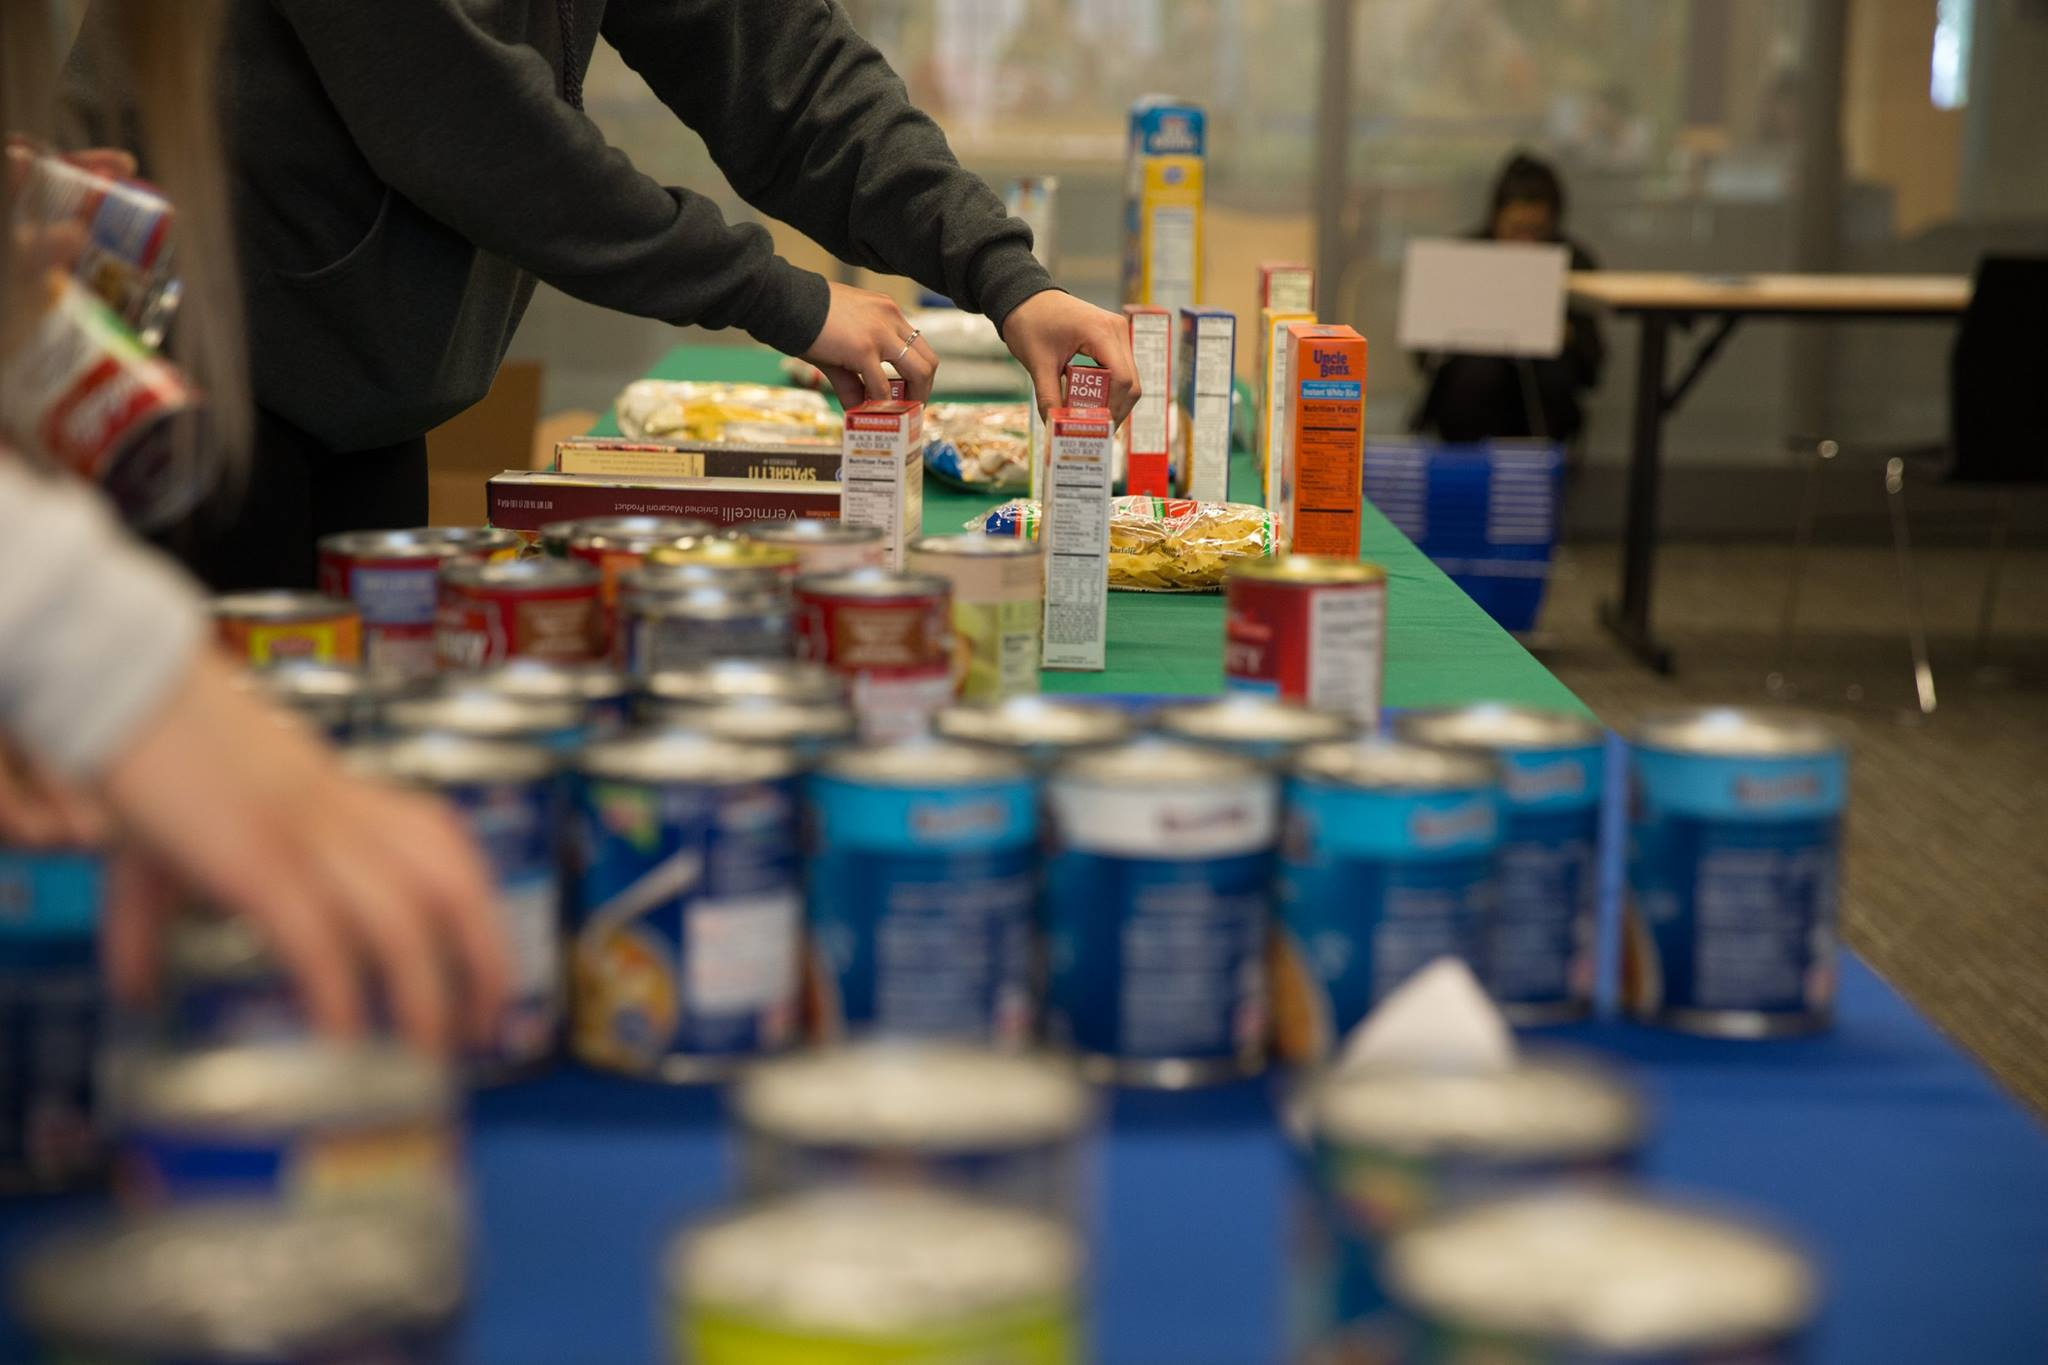 The UW Campus Food Pantry supplies free food to anyone with a Husky ID. It's open every other Wednesday during winter quarter.